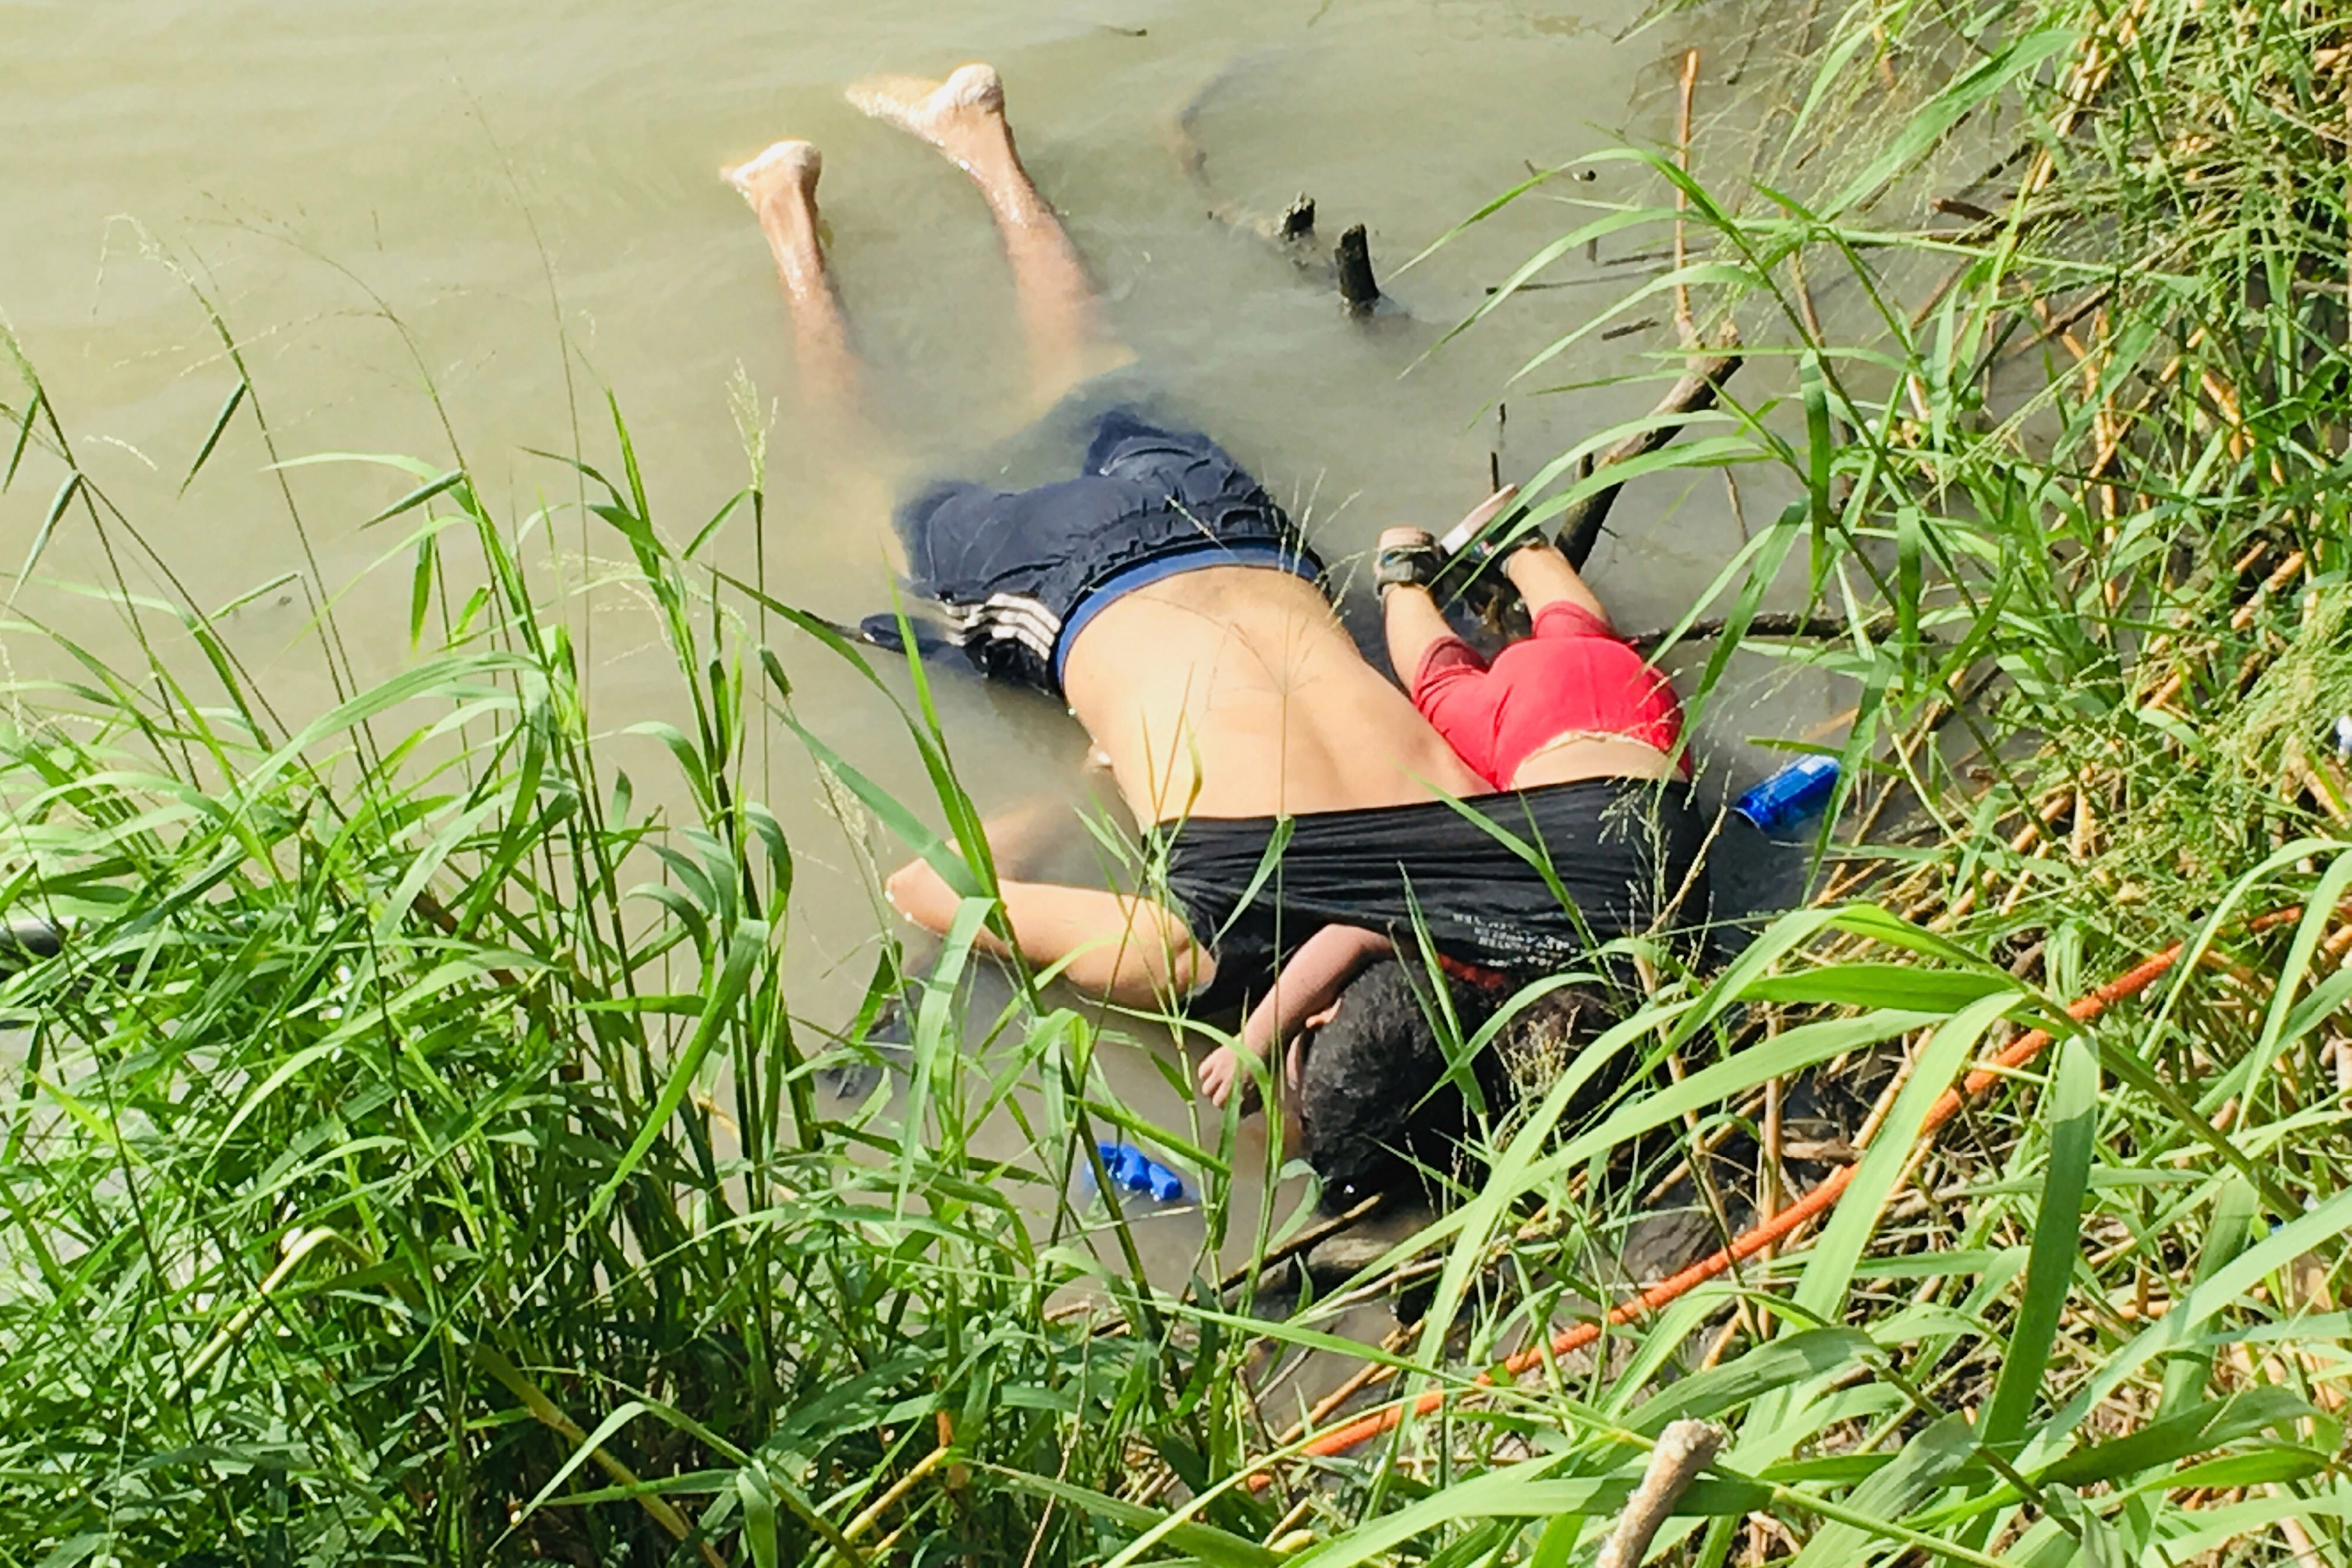 The deaths of the Mexican border migrants in Mexico